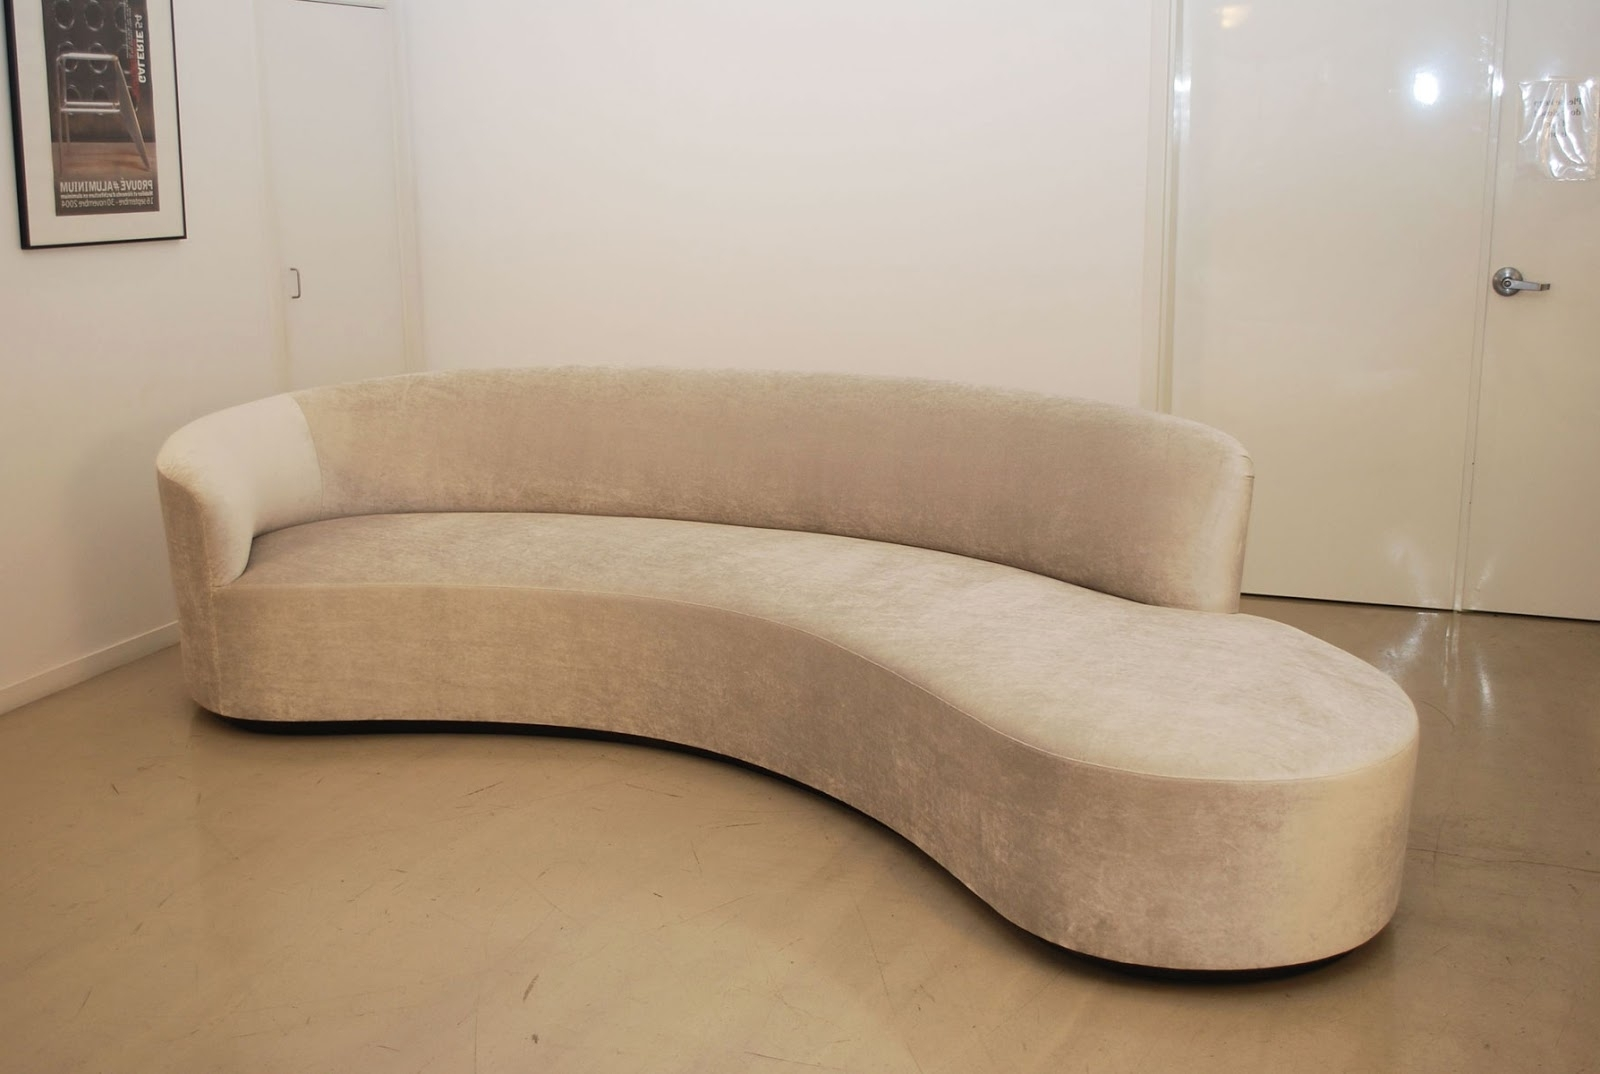 Semicircular Sofas Inside Best And Newest Semi Circle Sofa Design Ideas — Cabinets, Beds, Sofas And (View 17 of 20)